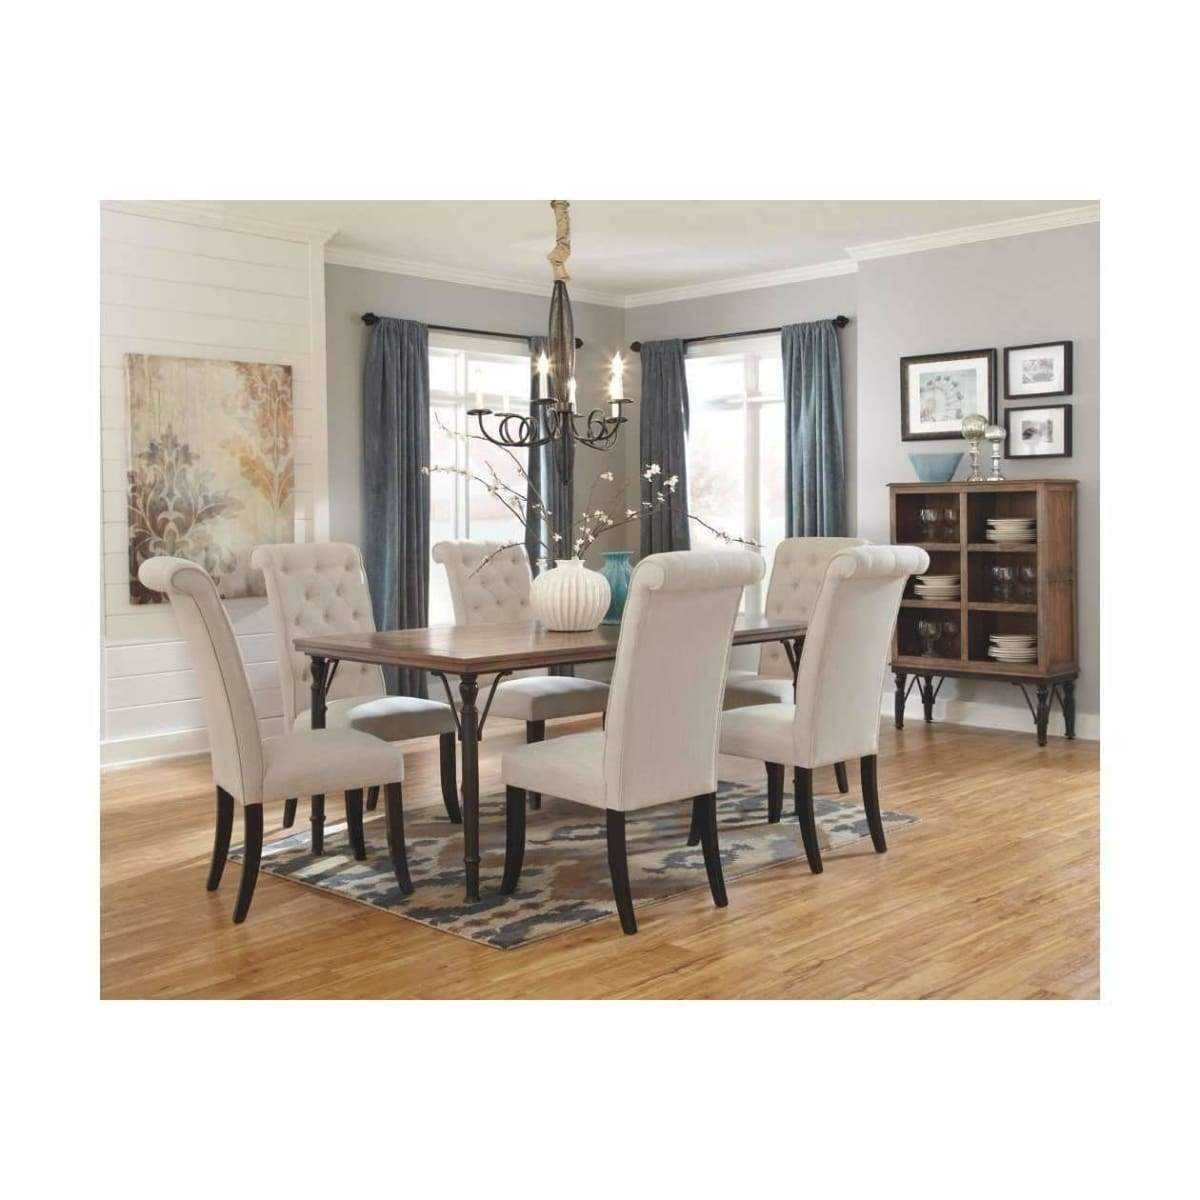 Tripton Dining Room Linen Chair - dining chairs